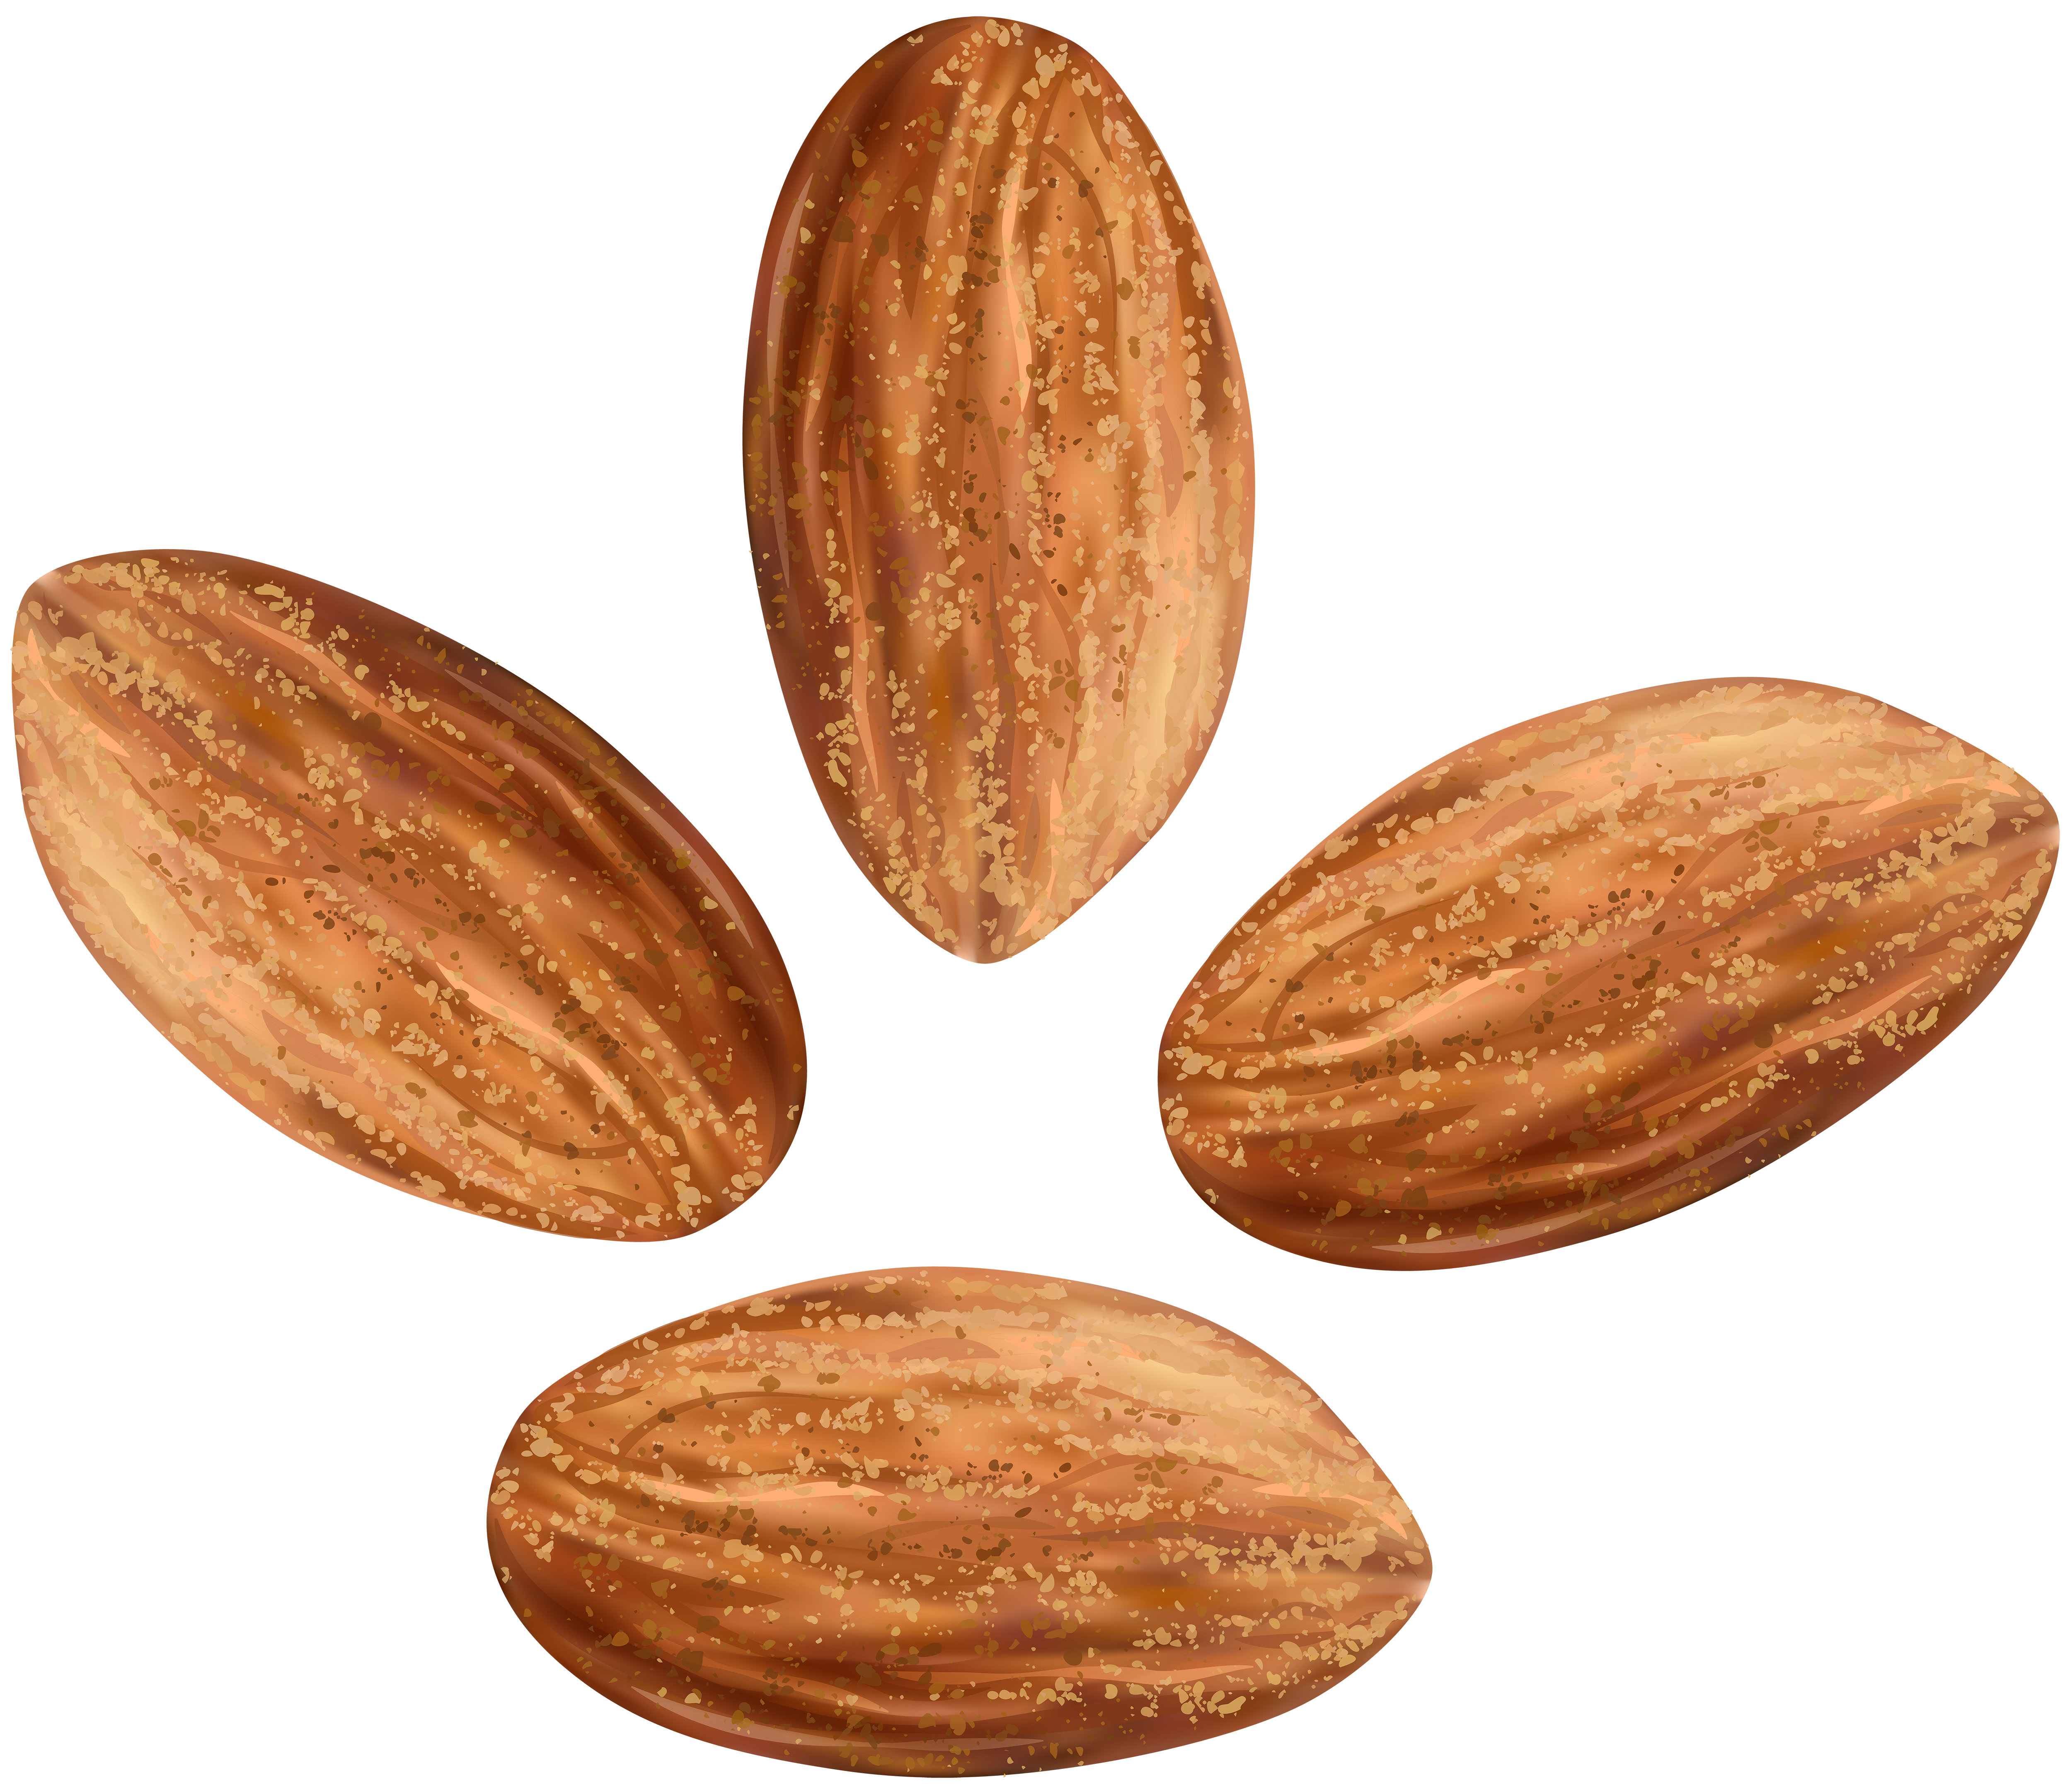 Almonds transparent clip art. Nuts clipart different seed